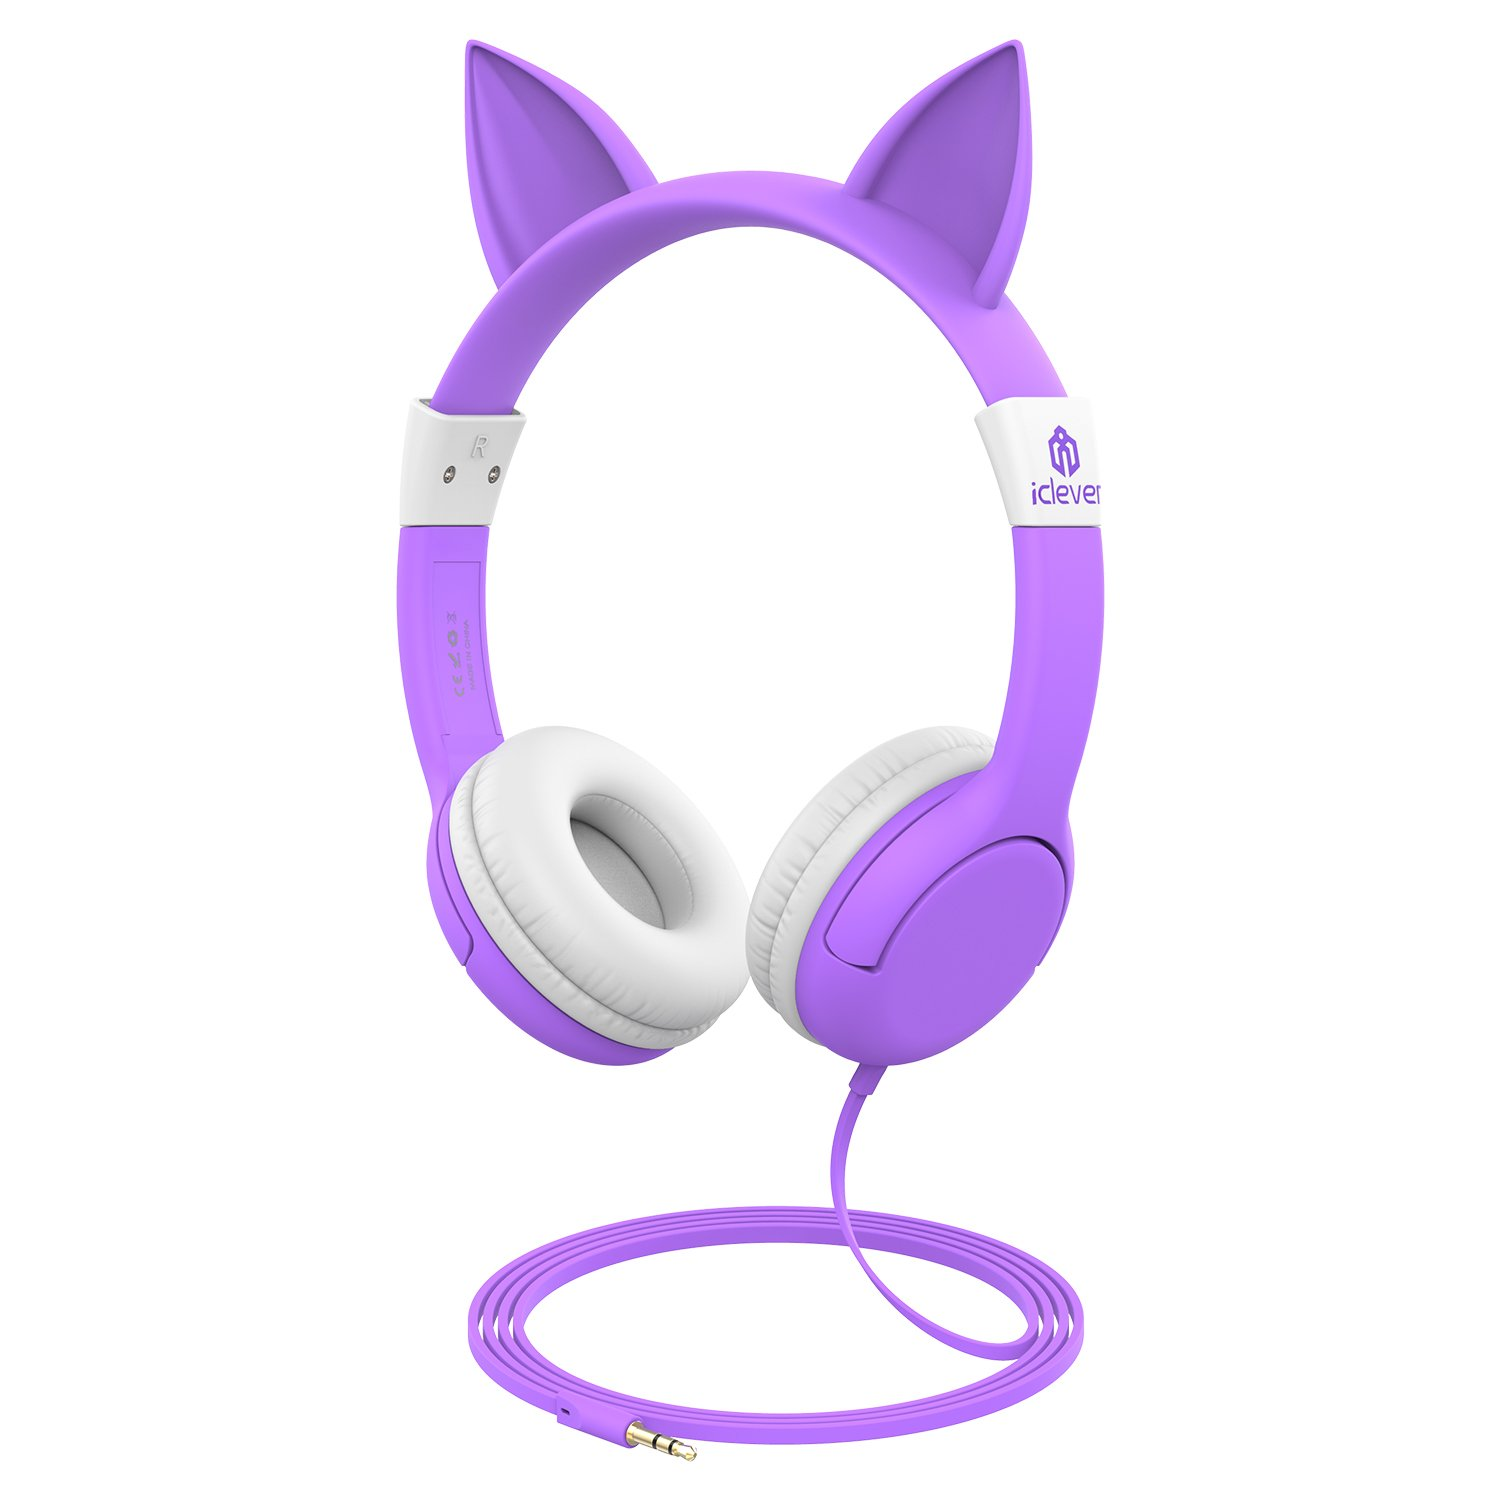 iClever Kids Cat Ear Headphones - The best kid headphones!